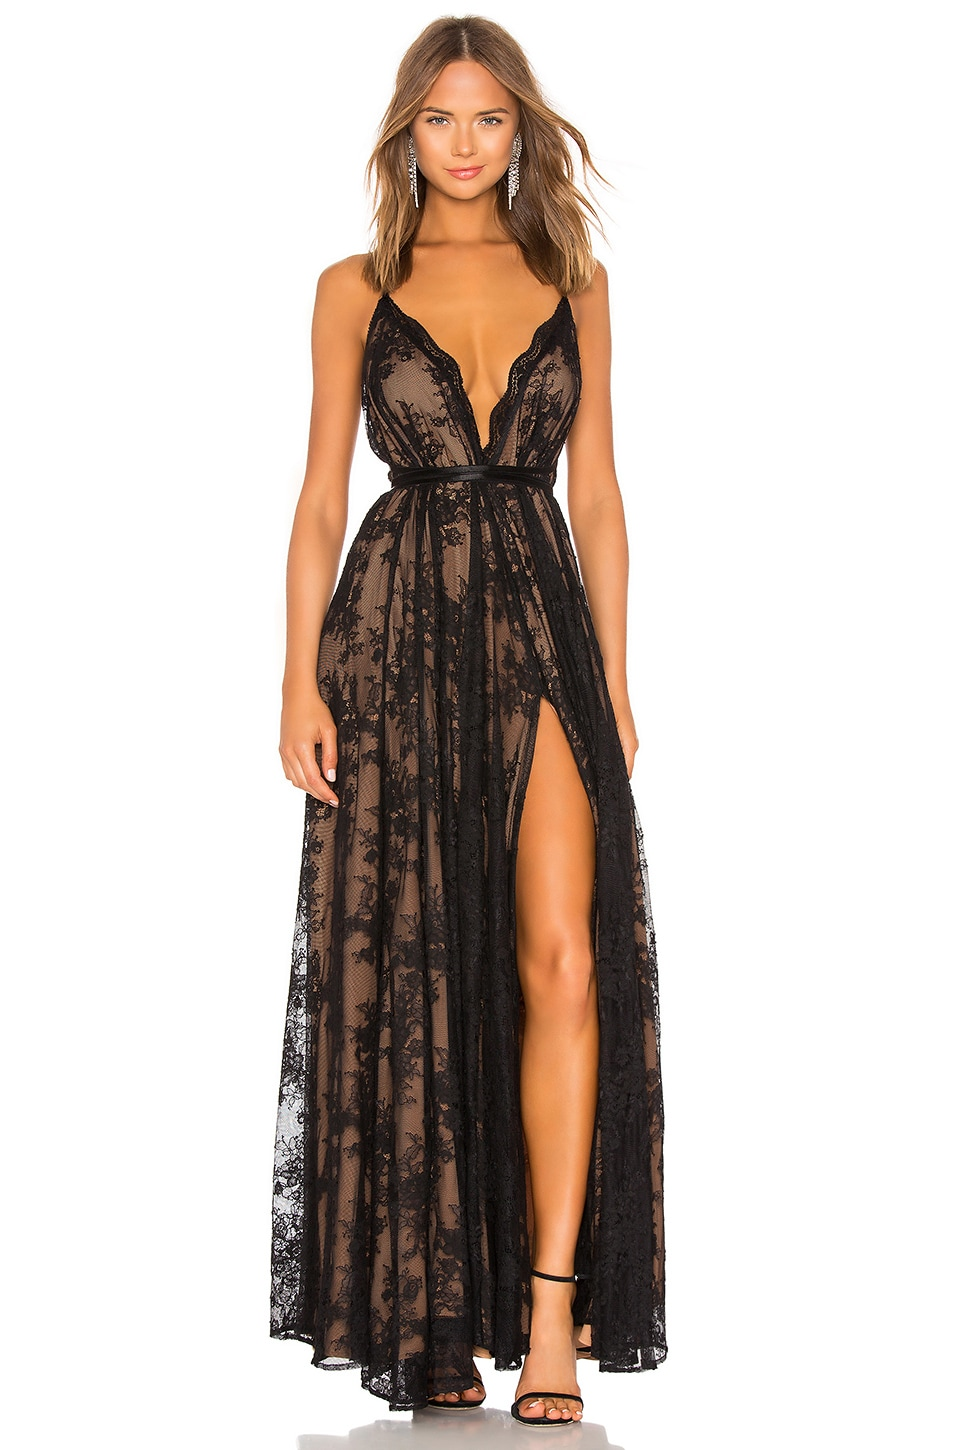 Michael Costello X Revolve Paris Gown In Black Revolve Revolve reviews and revolve.com customer ratings for january 2021. revolve